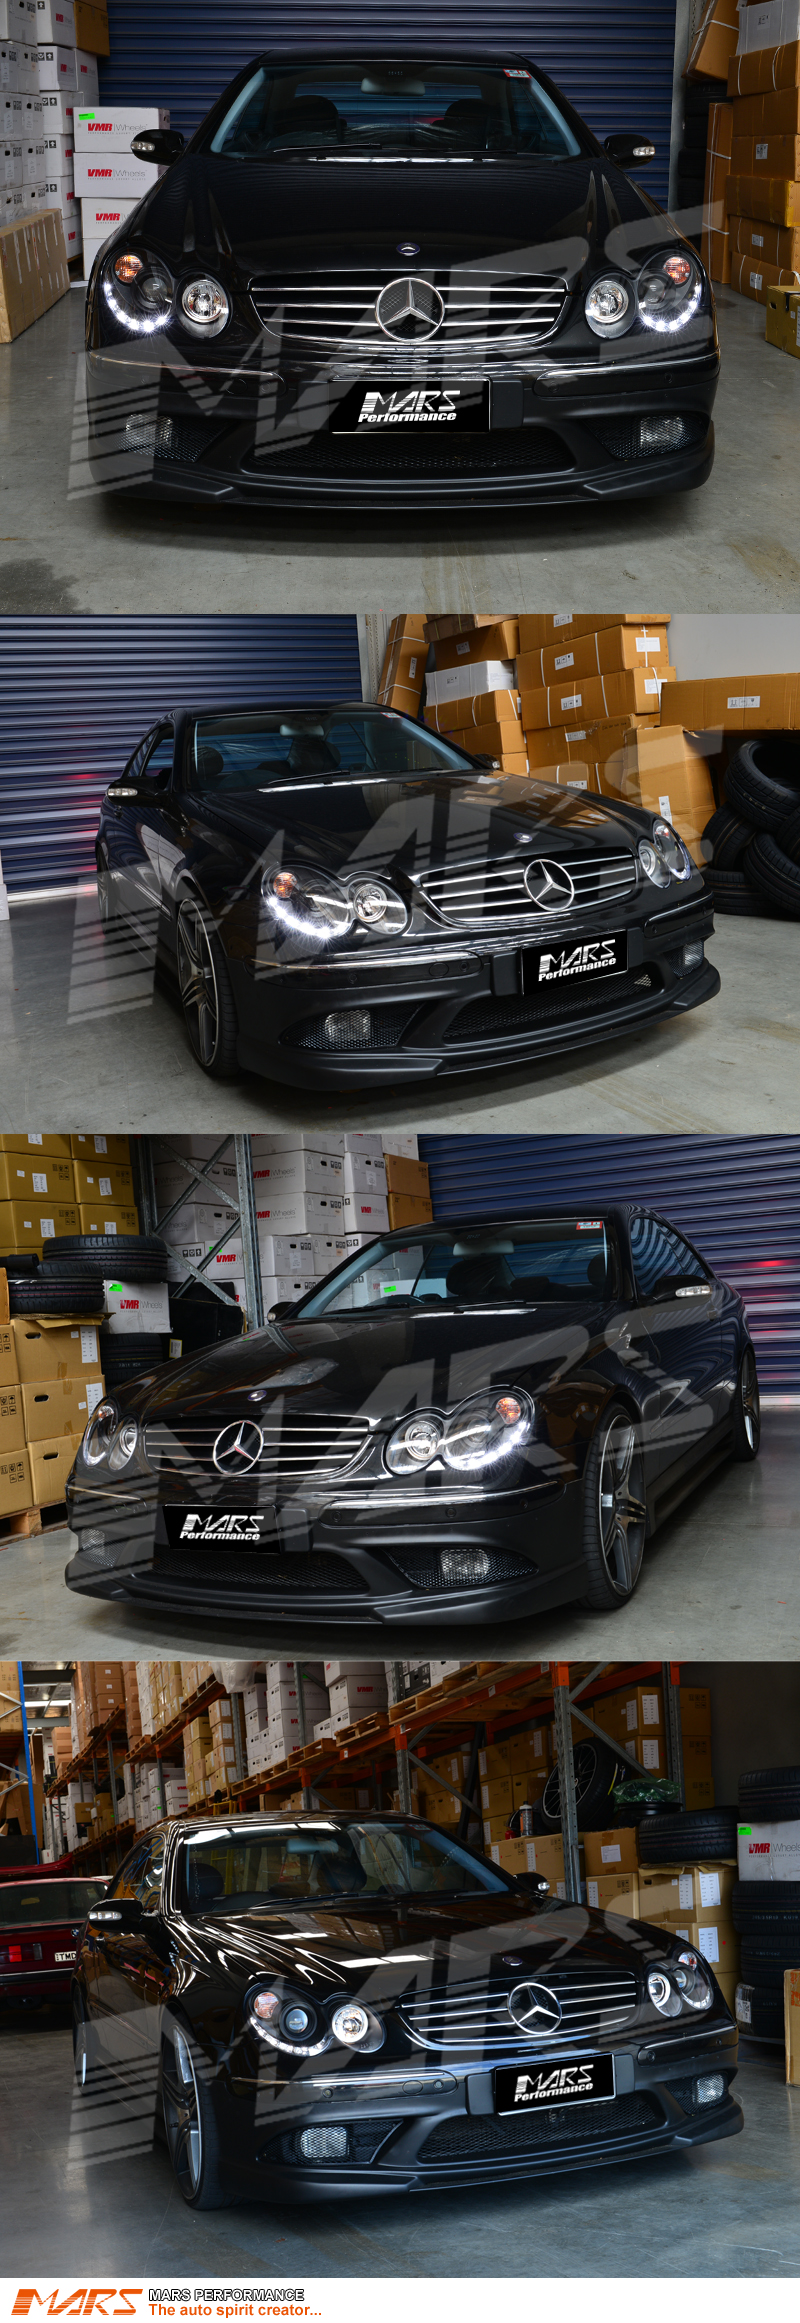 Black Day-Time LED DRL Projector Head Lights for Mercede